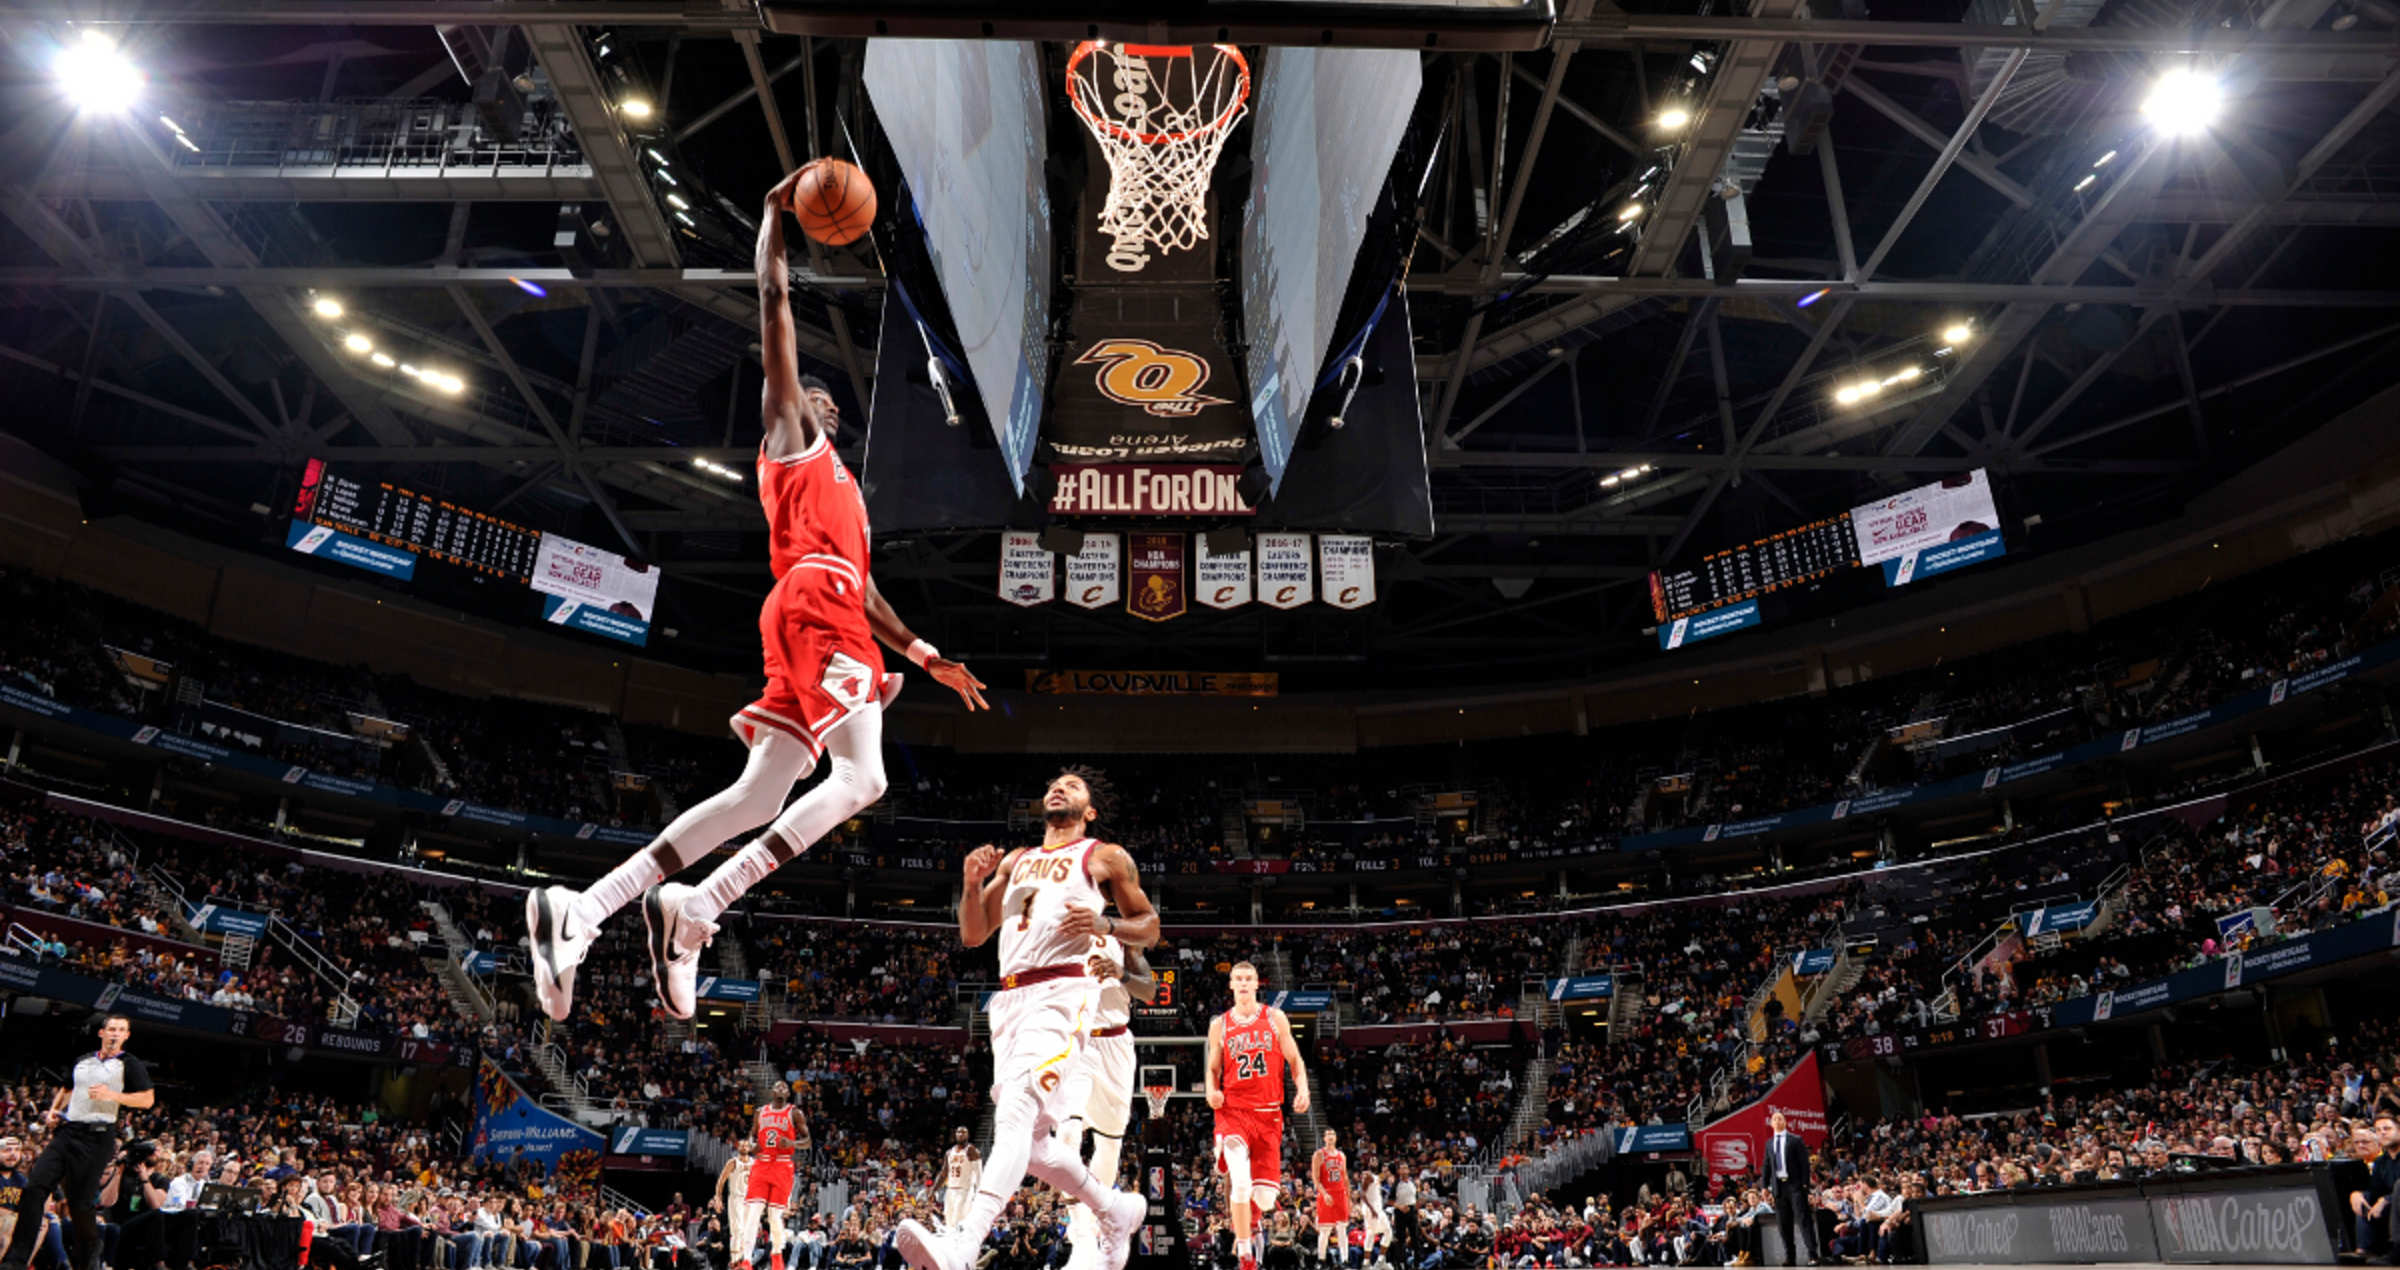 Justin Holiday #7 of the Chicago Bulls goes to the basket against the Cleveland Cavaliers on October 10, 2017 at Quicken Loans Arena in Cleveland, Ohio.